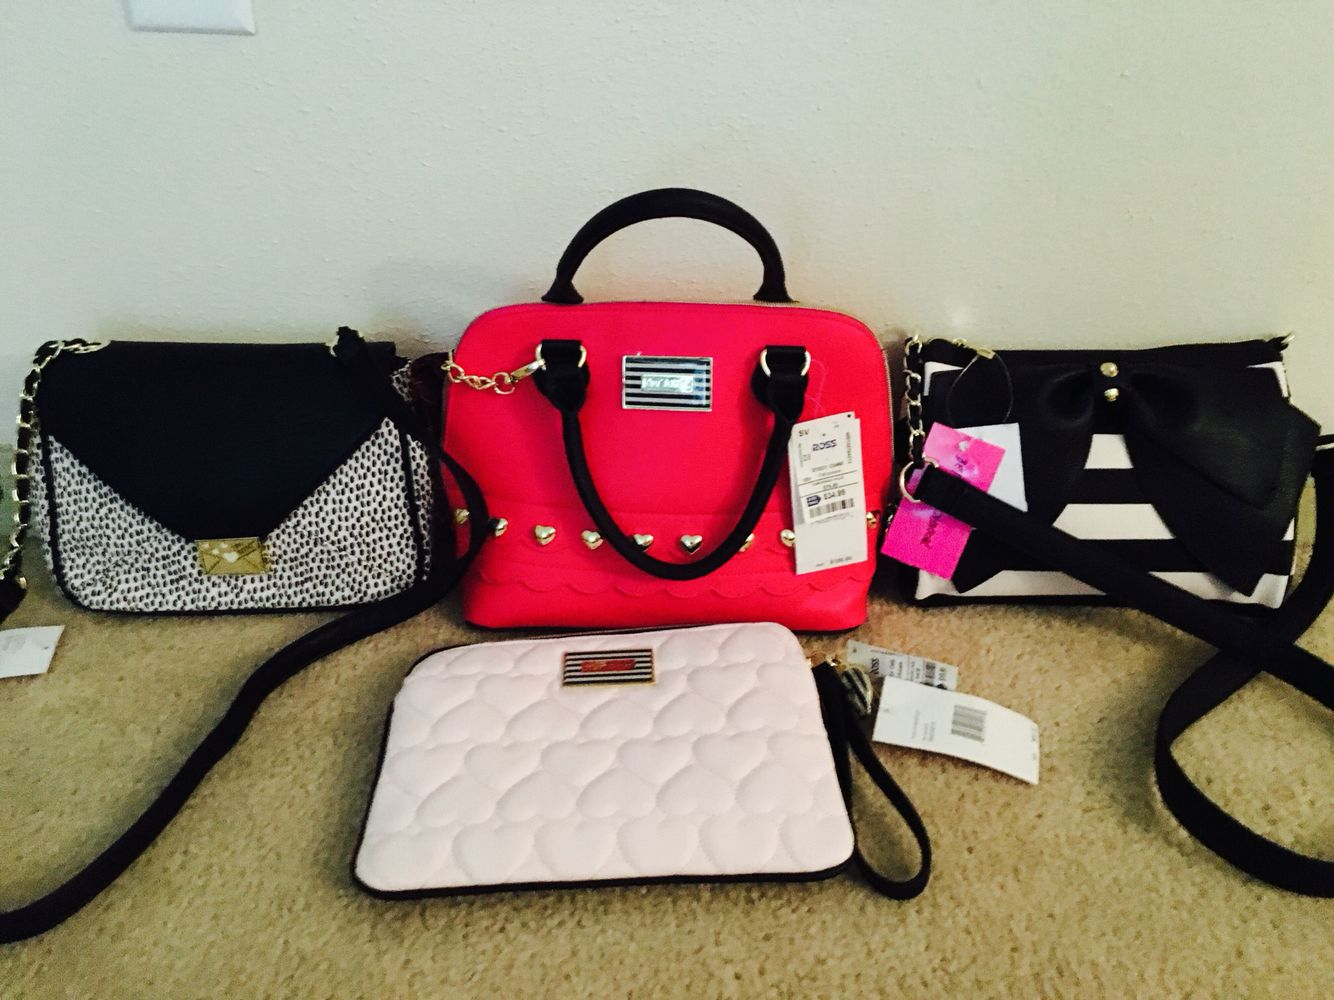 New Betsey Johnson Bags At Ross And Burlington